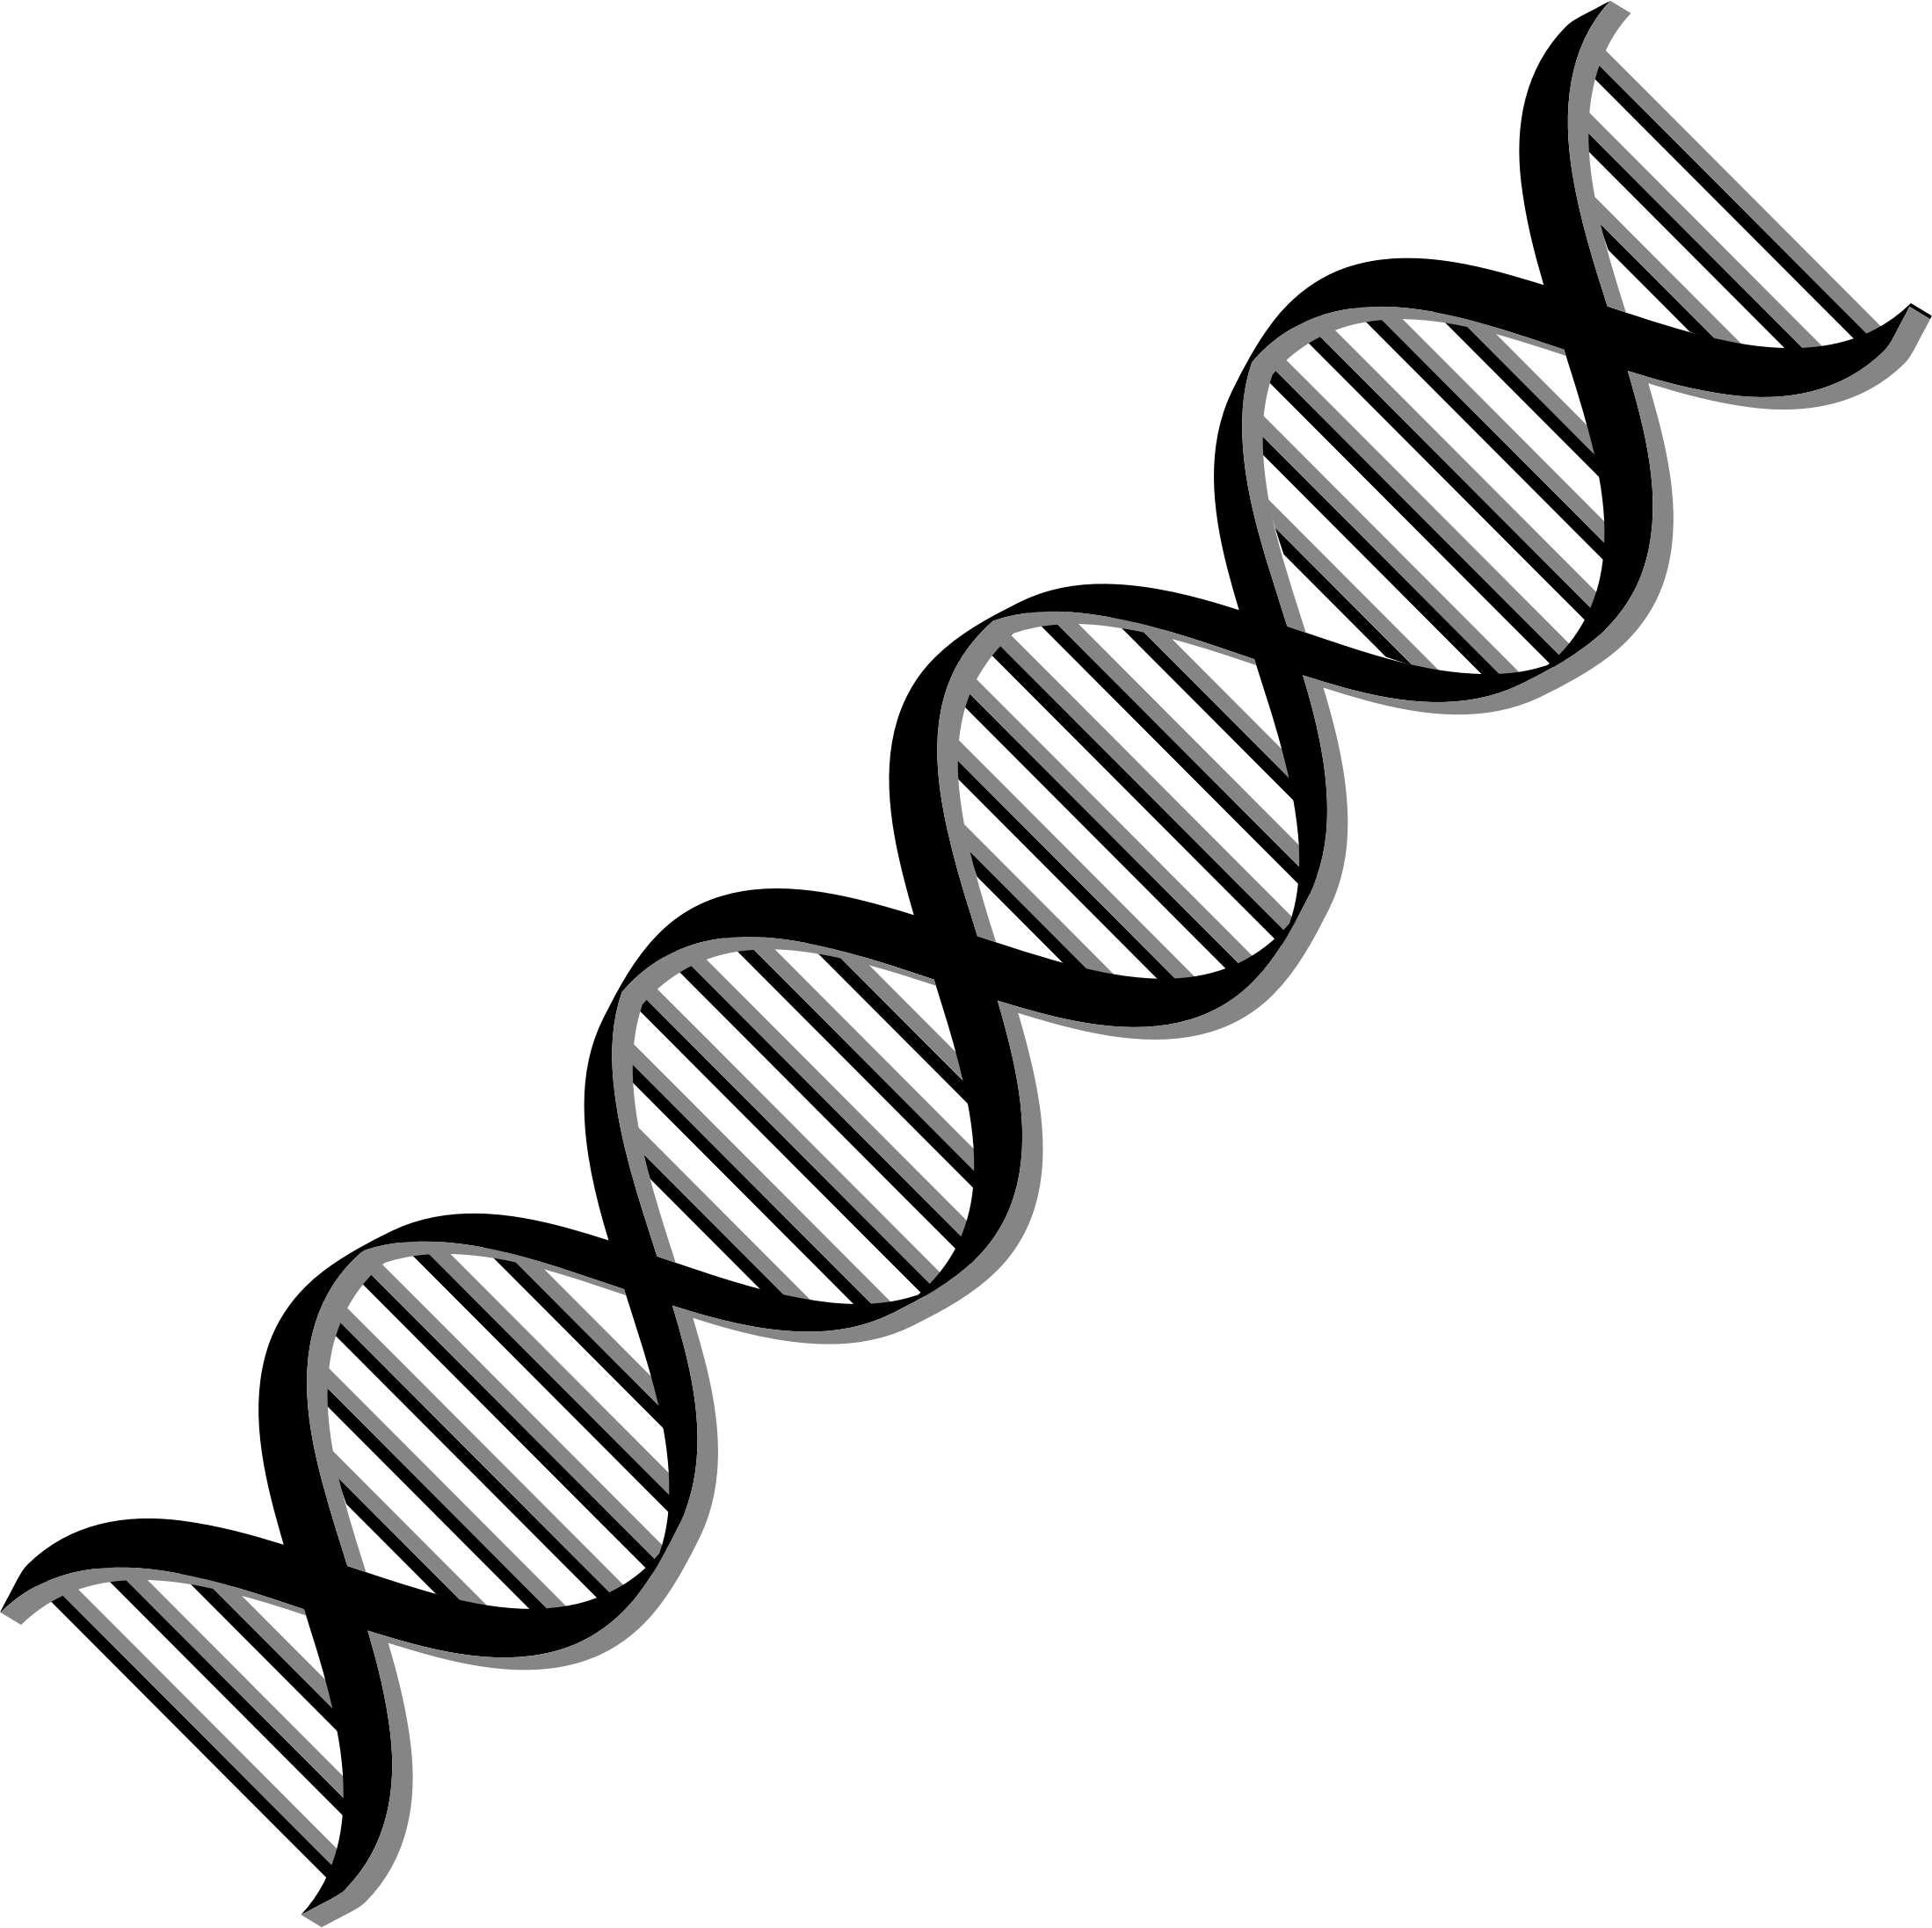 Clipart - DNA Helix Variation 2